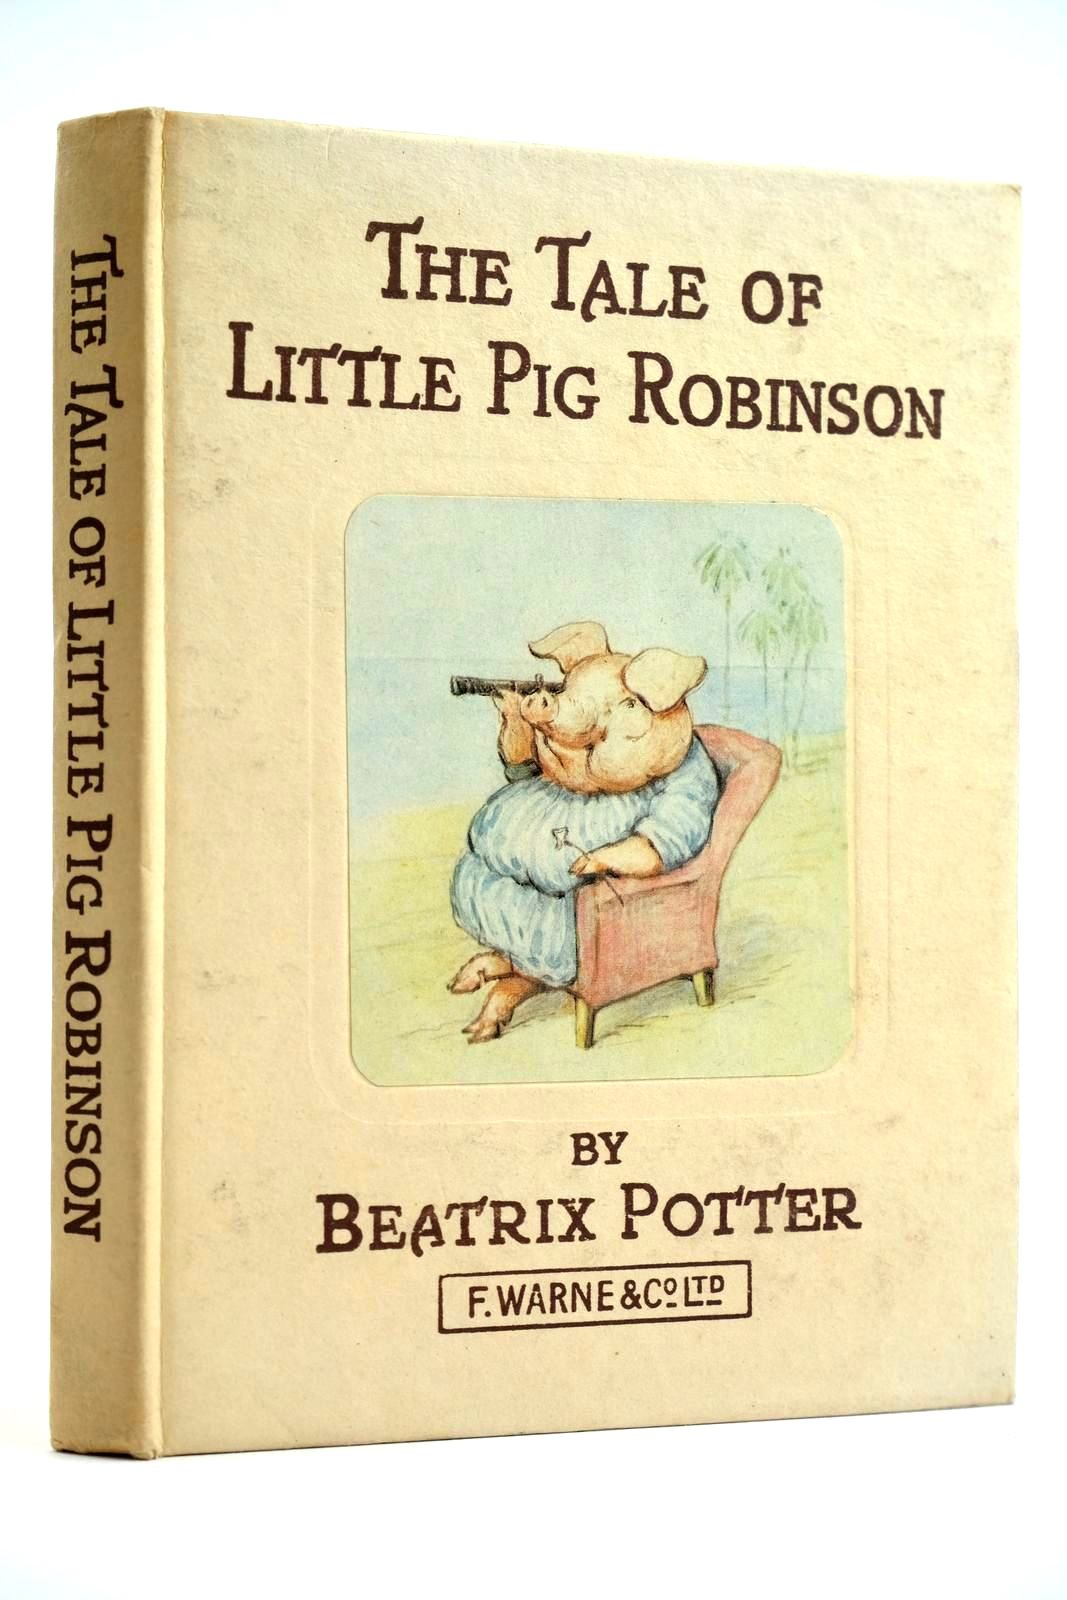 Photo of THE TALE OF LITTLE PIG ROBINSON written by Potter, Beatrix illustrated by Potter, Beatrix published by Frederick Warne & Co Ltd. (STOCK CODE: 2132074)  for sale by Stella & Rose's Books